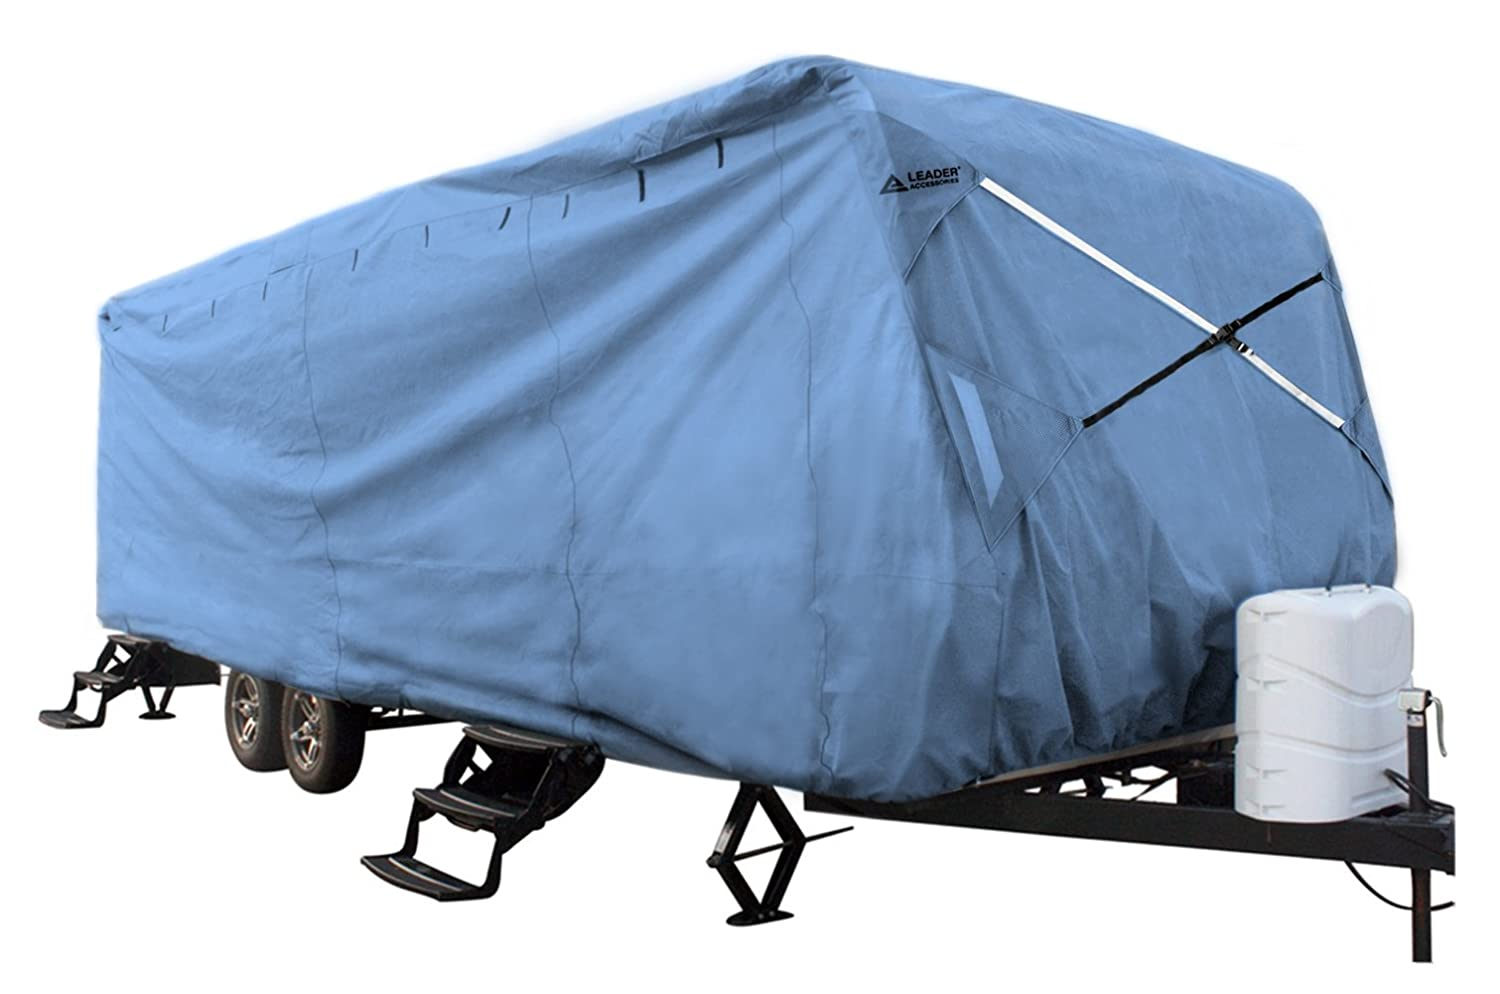 Leader Accessories Green Travel Trailer RV Cover Fits 24'-27' Trailer Camper 3 Layer Polypro